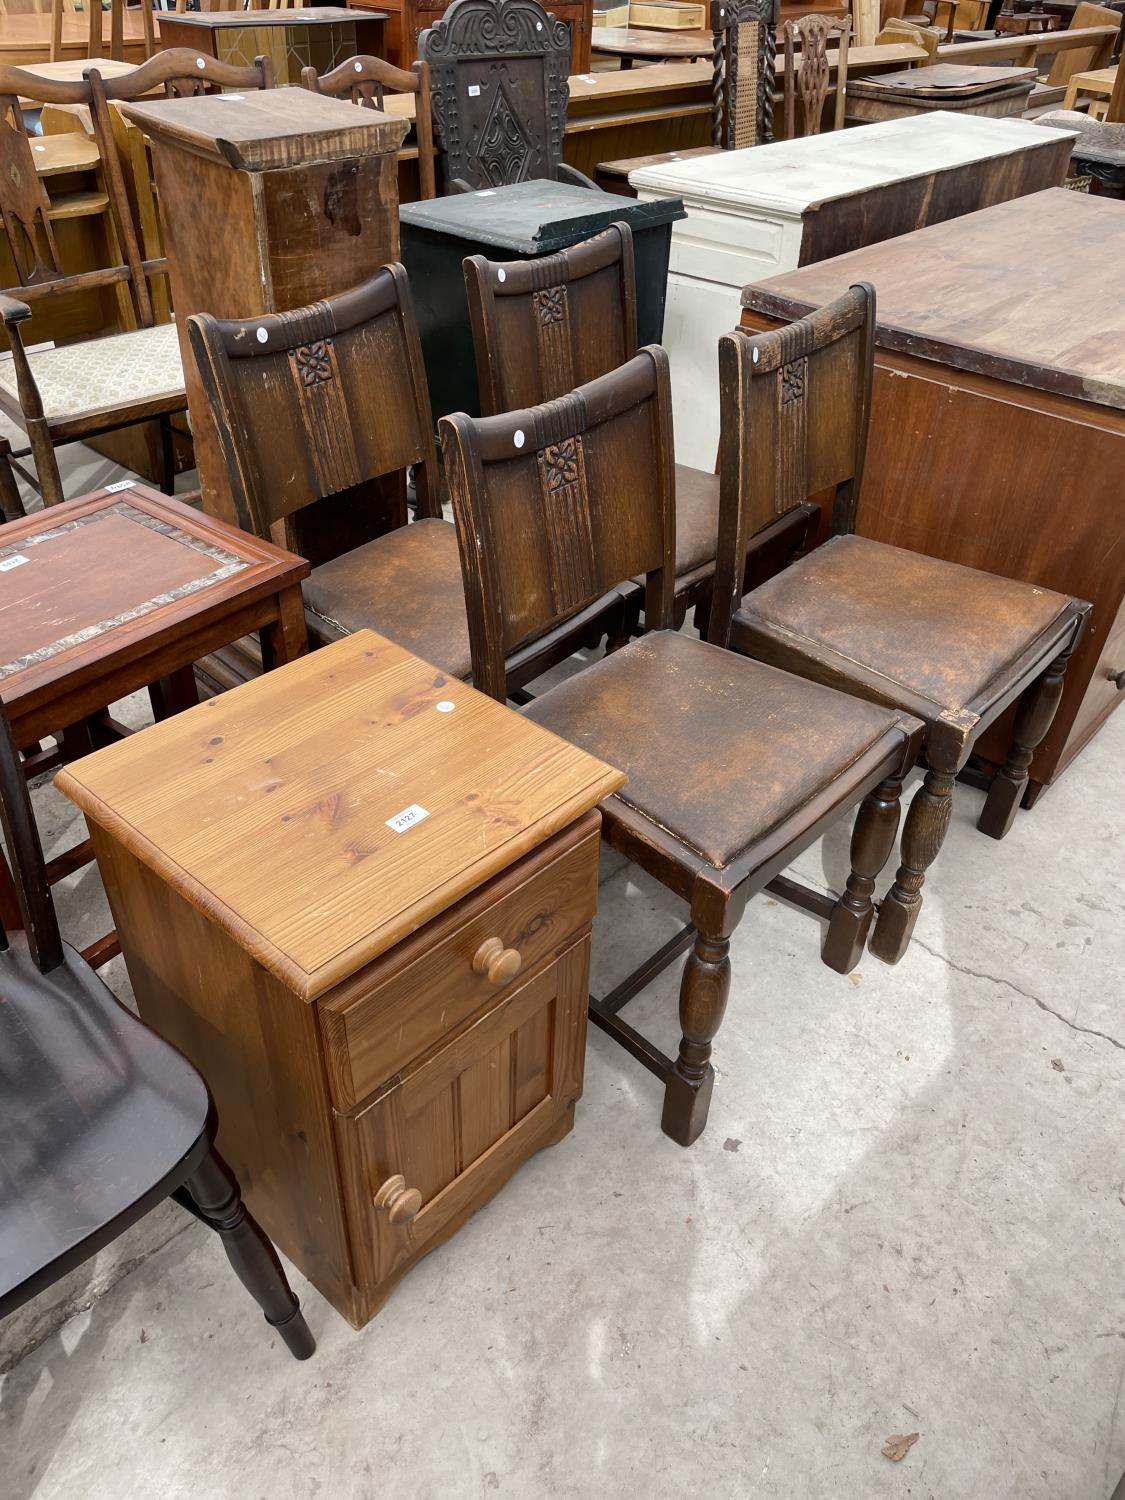 A SET OF FOUR EARLY 20TH CENTURY OAK DINING CHAIRS AND A PINE LOCKER